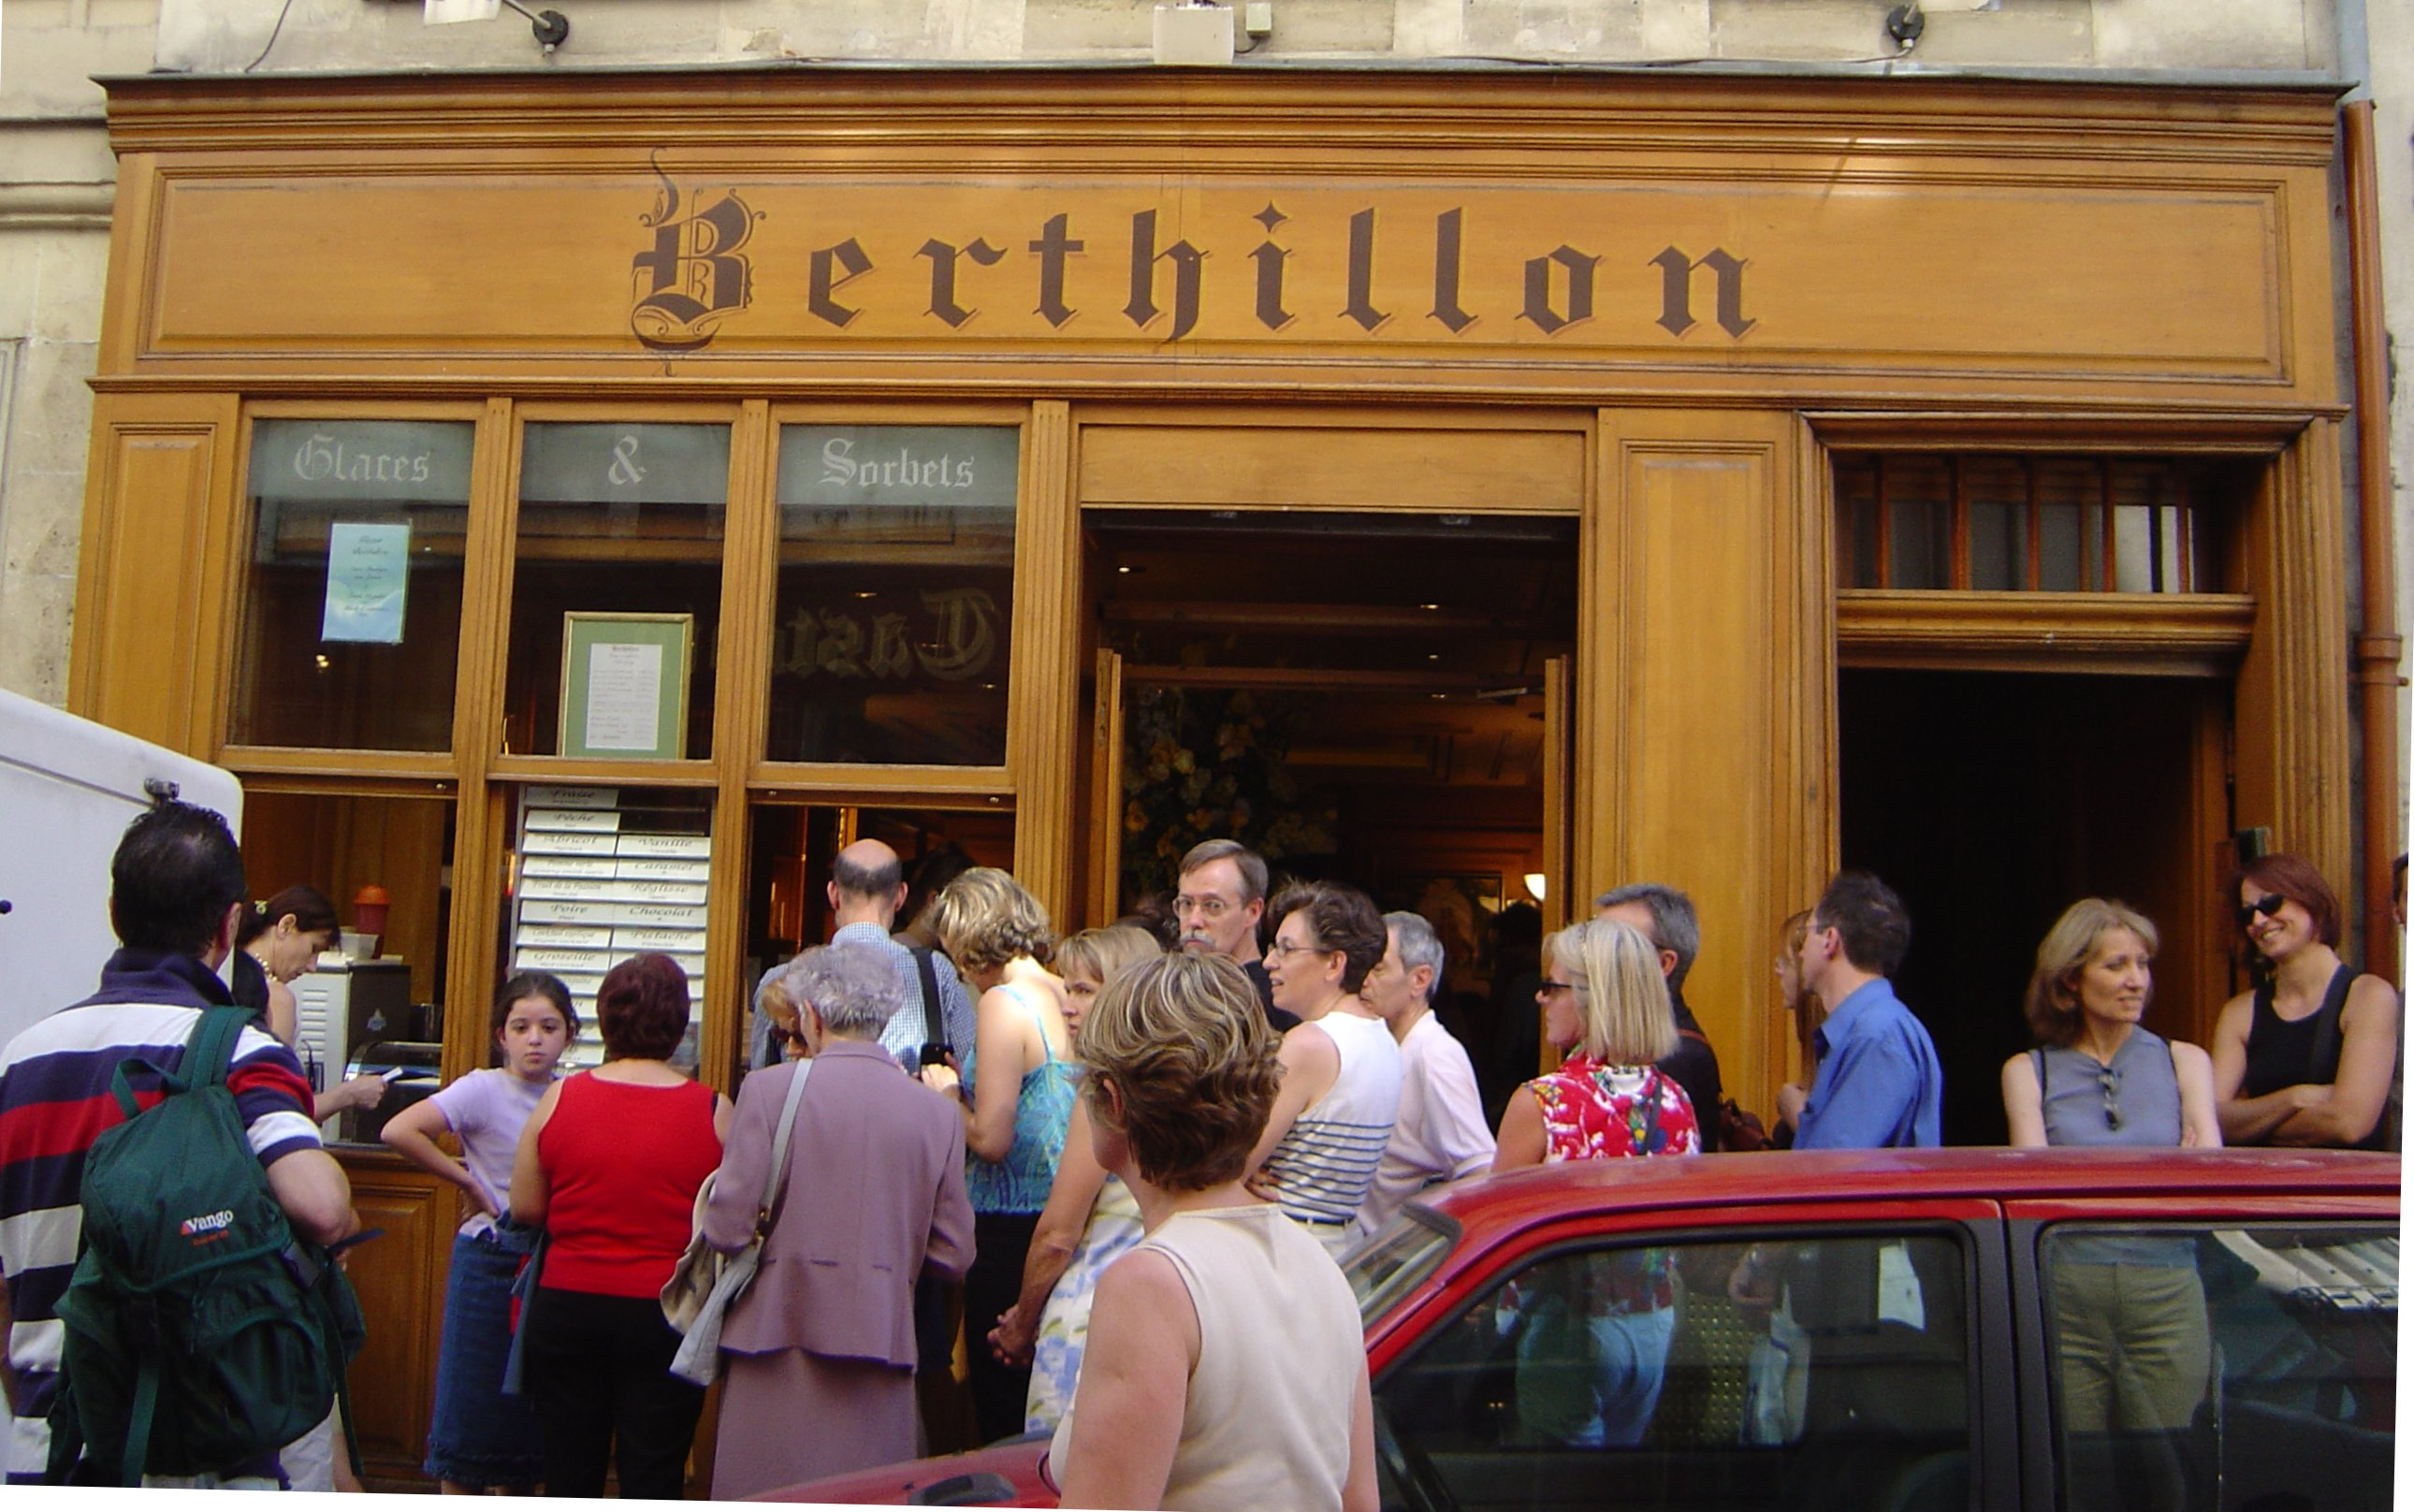 berthillion line - Copy